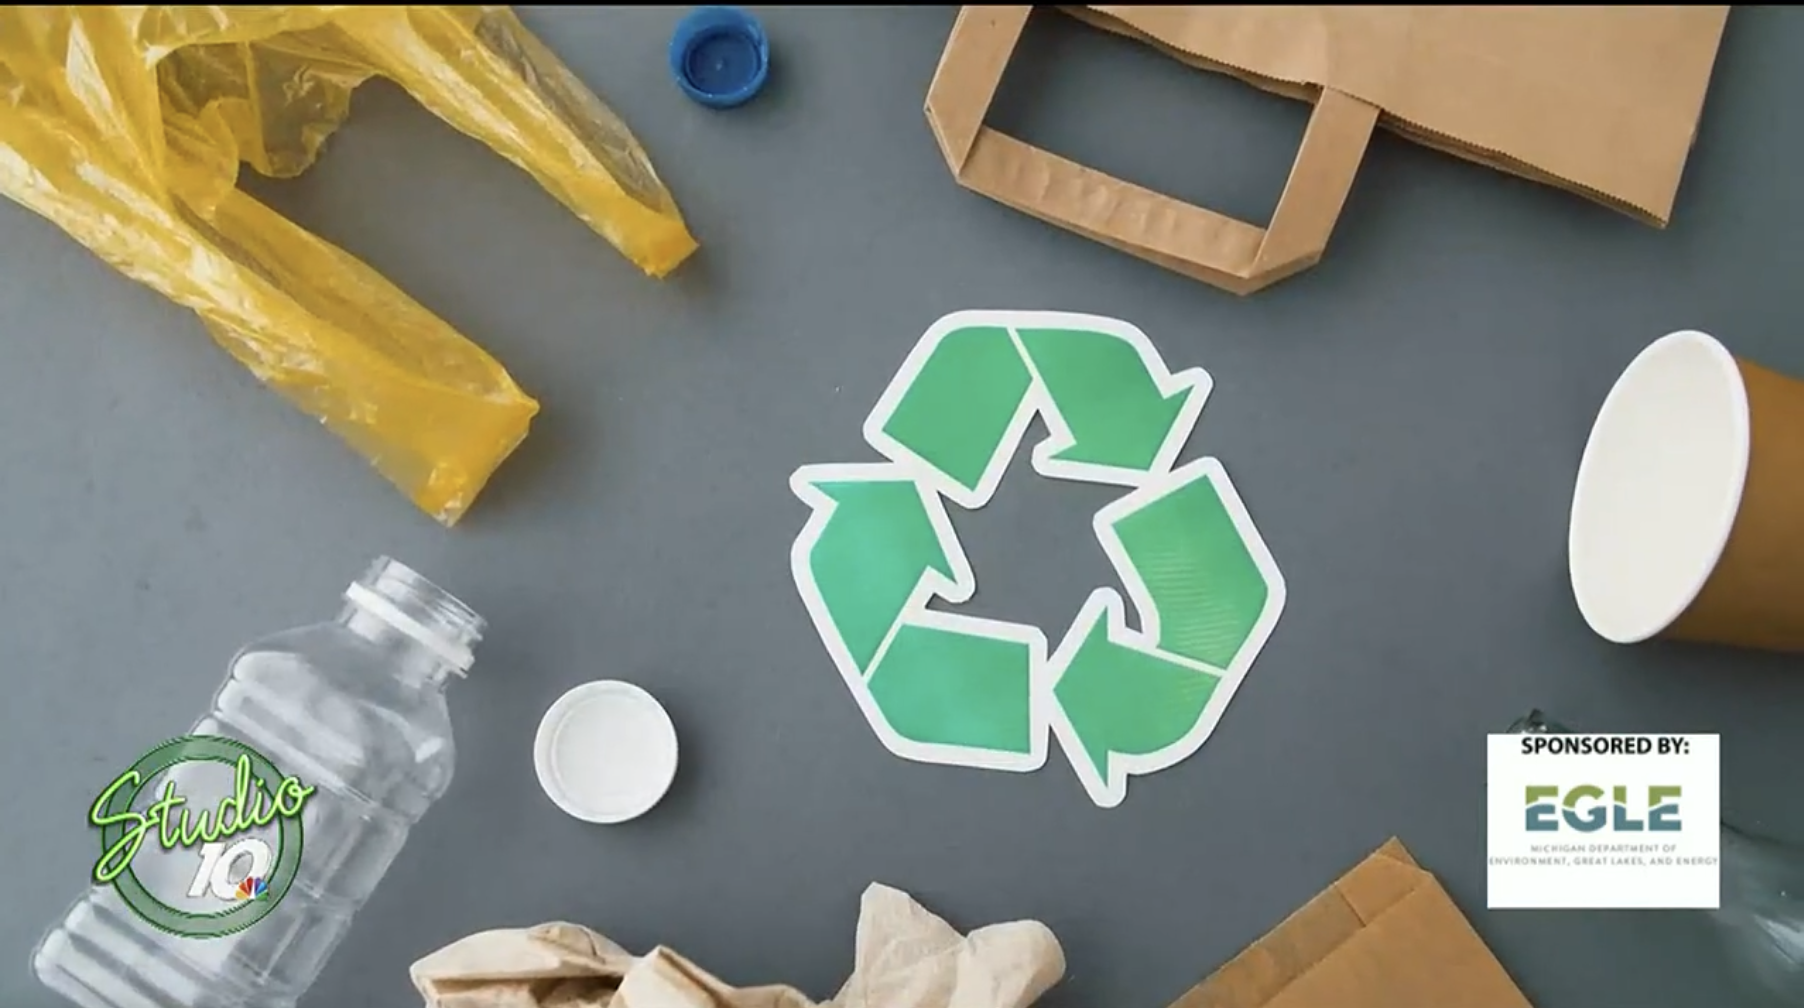 Find out if you're recycling the correct way